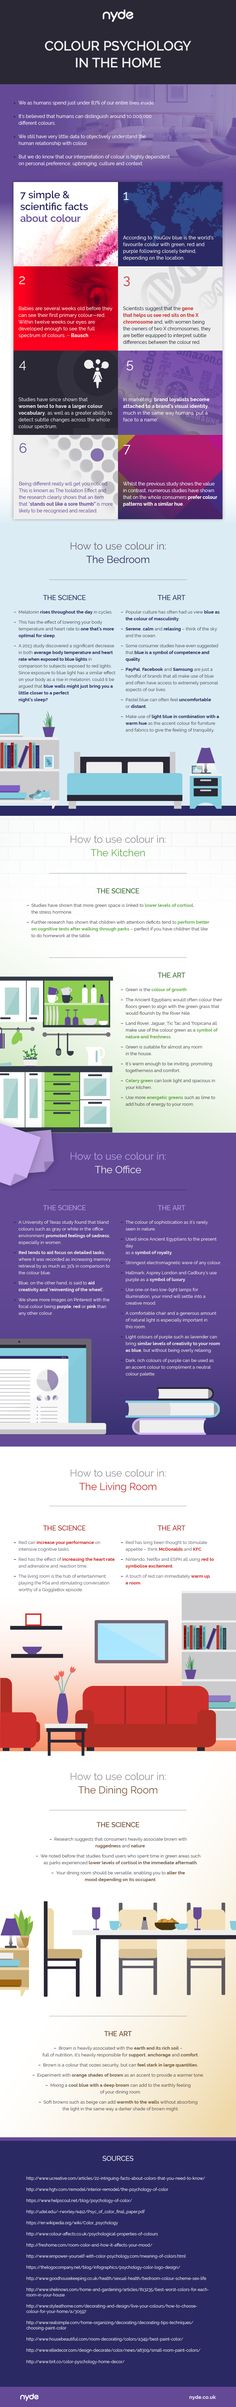 Infographic presenting statistics around room colours and moods in the home